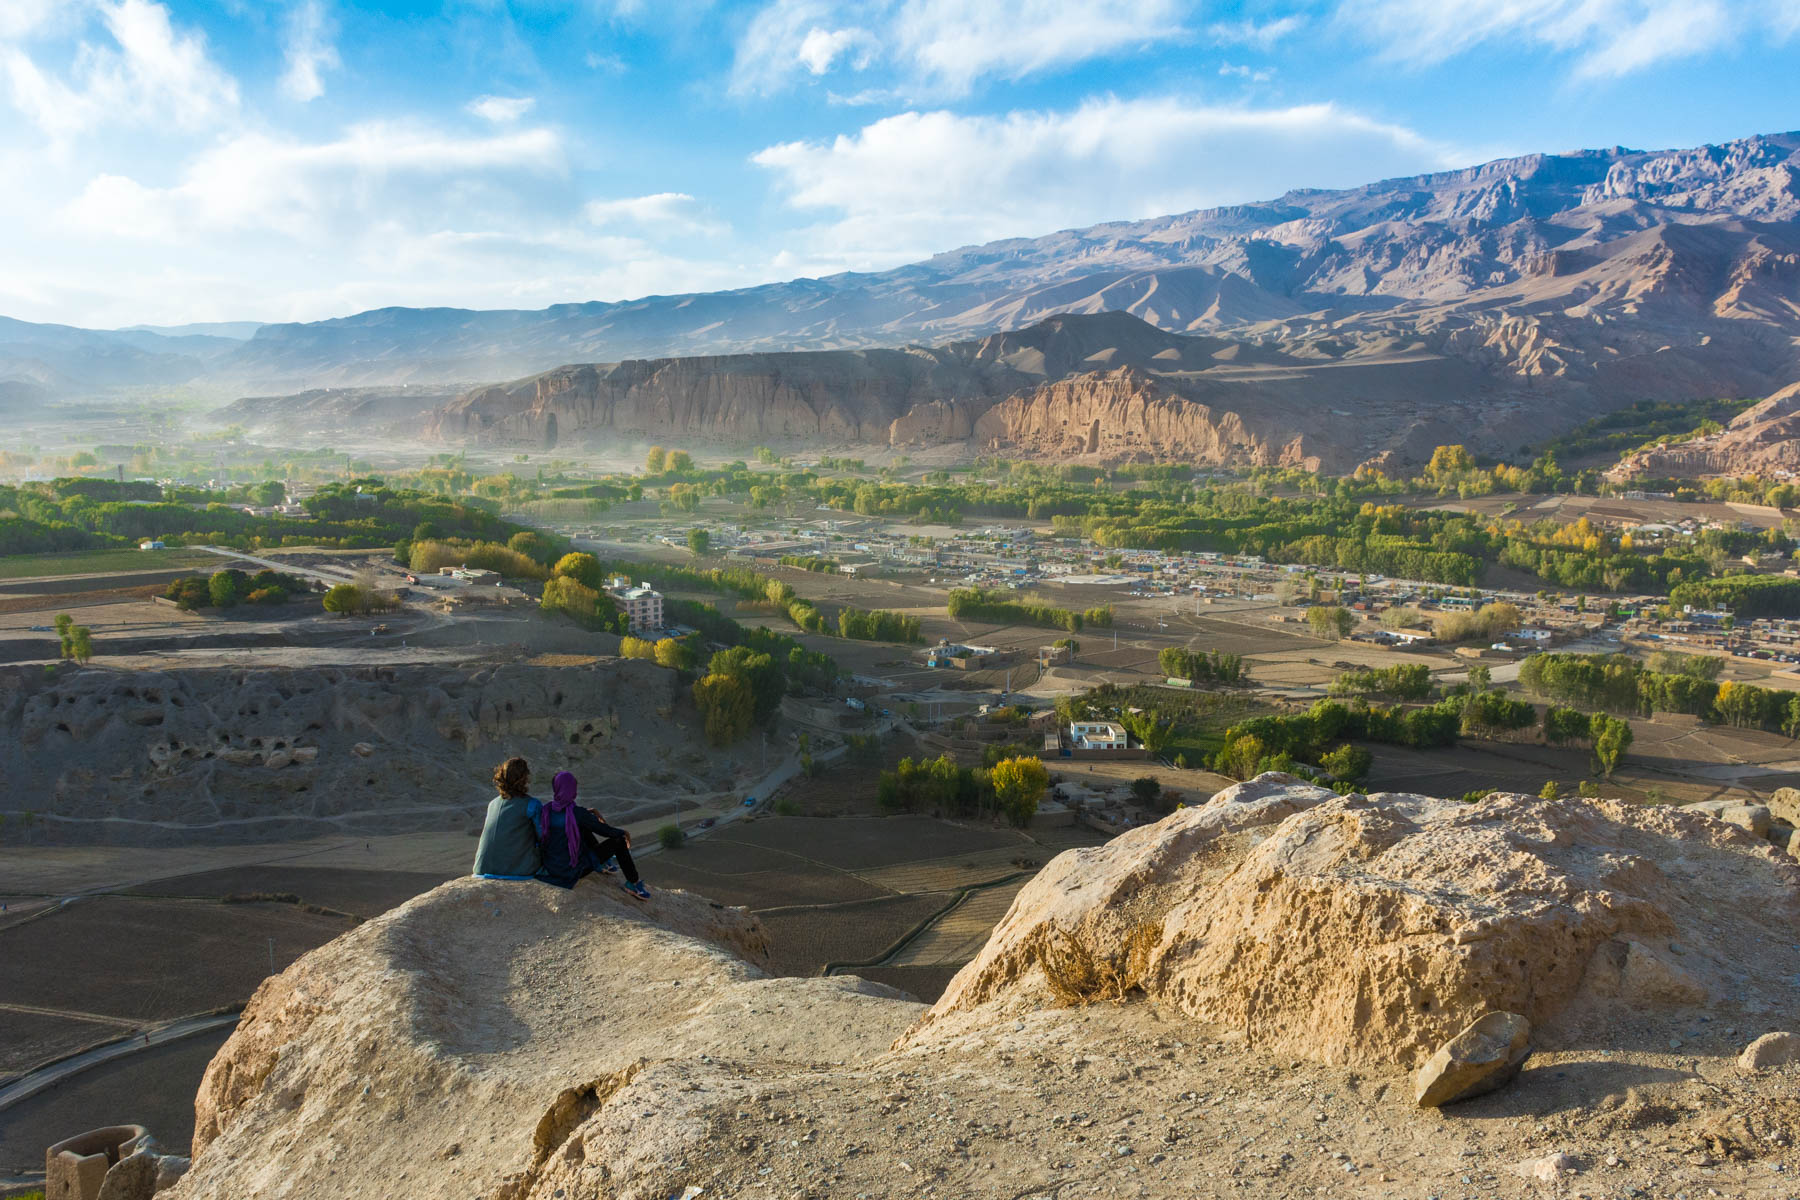 Overlooking the destroyed Buddha caves in Bamyan, Afghanistan - Lost With Purpose